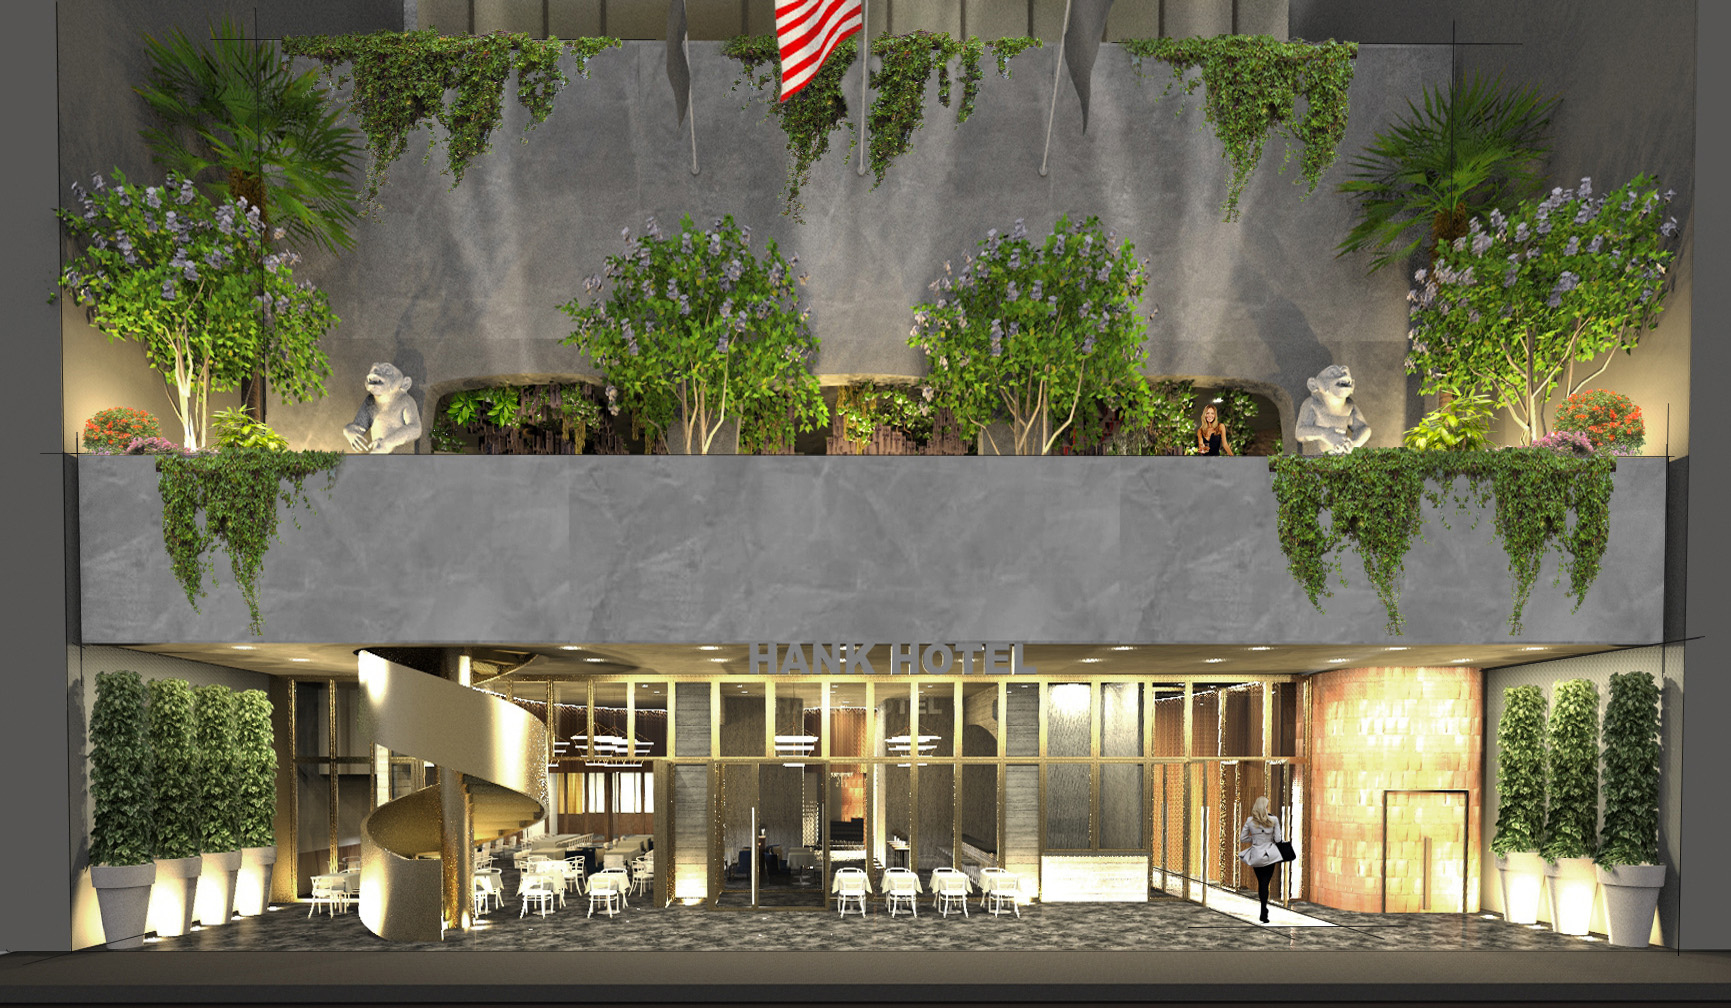 30 West 39th Street_PPA Web Content_Page_3.jpg